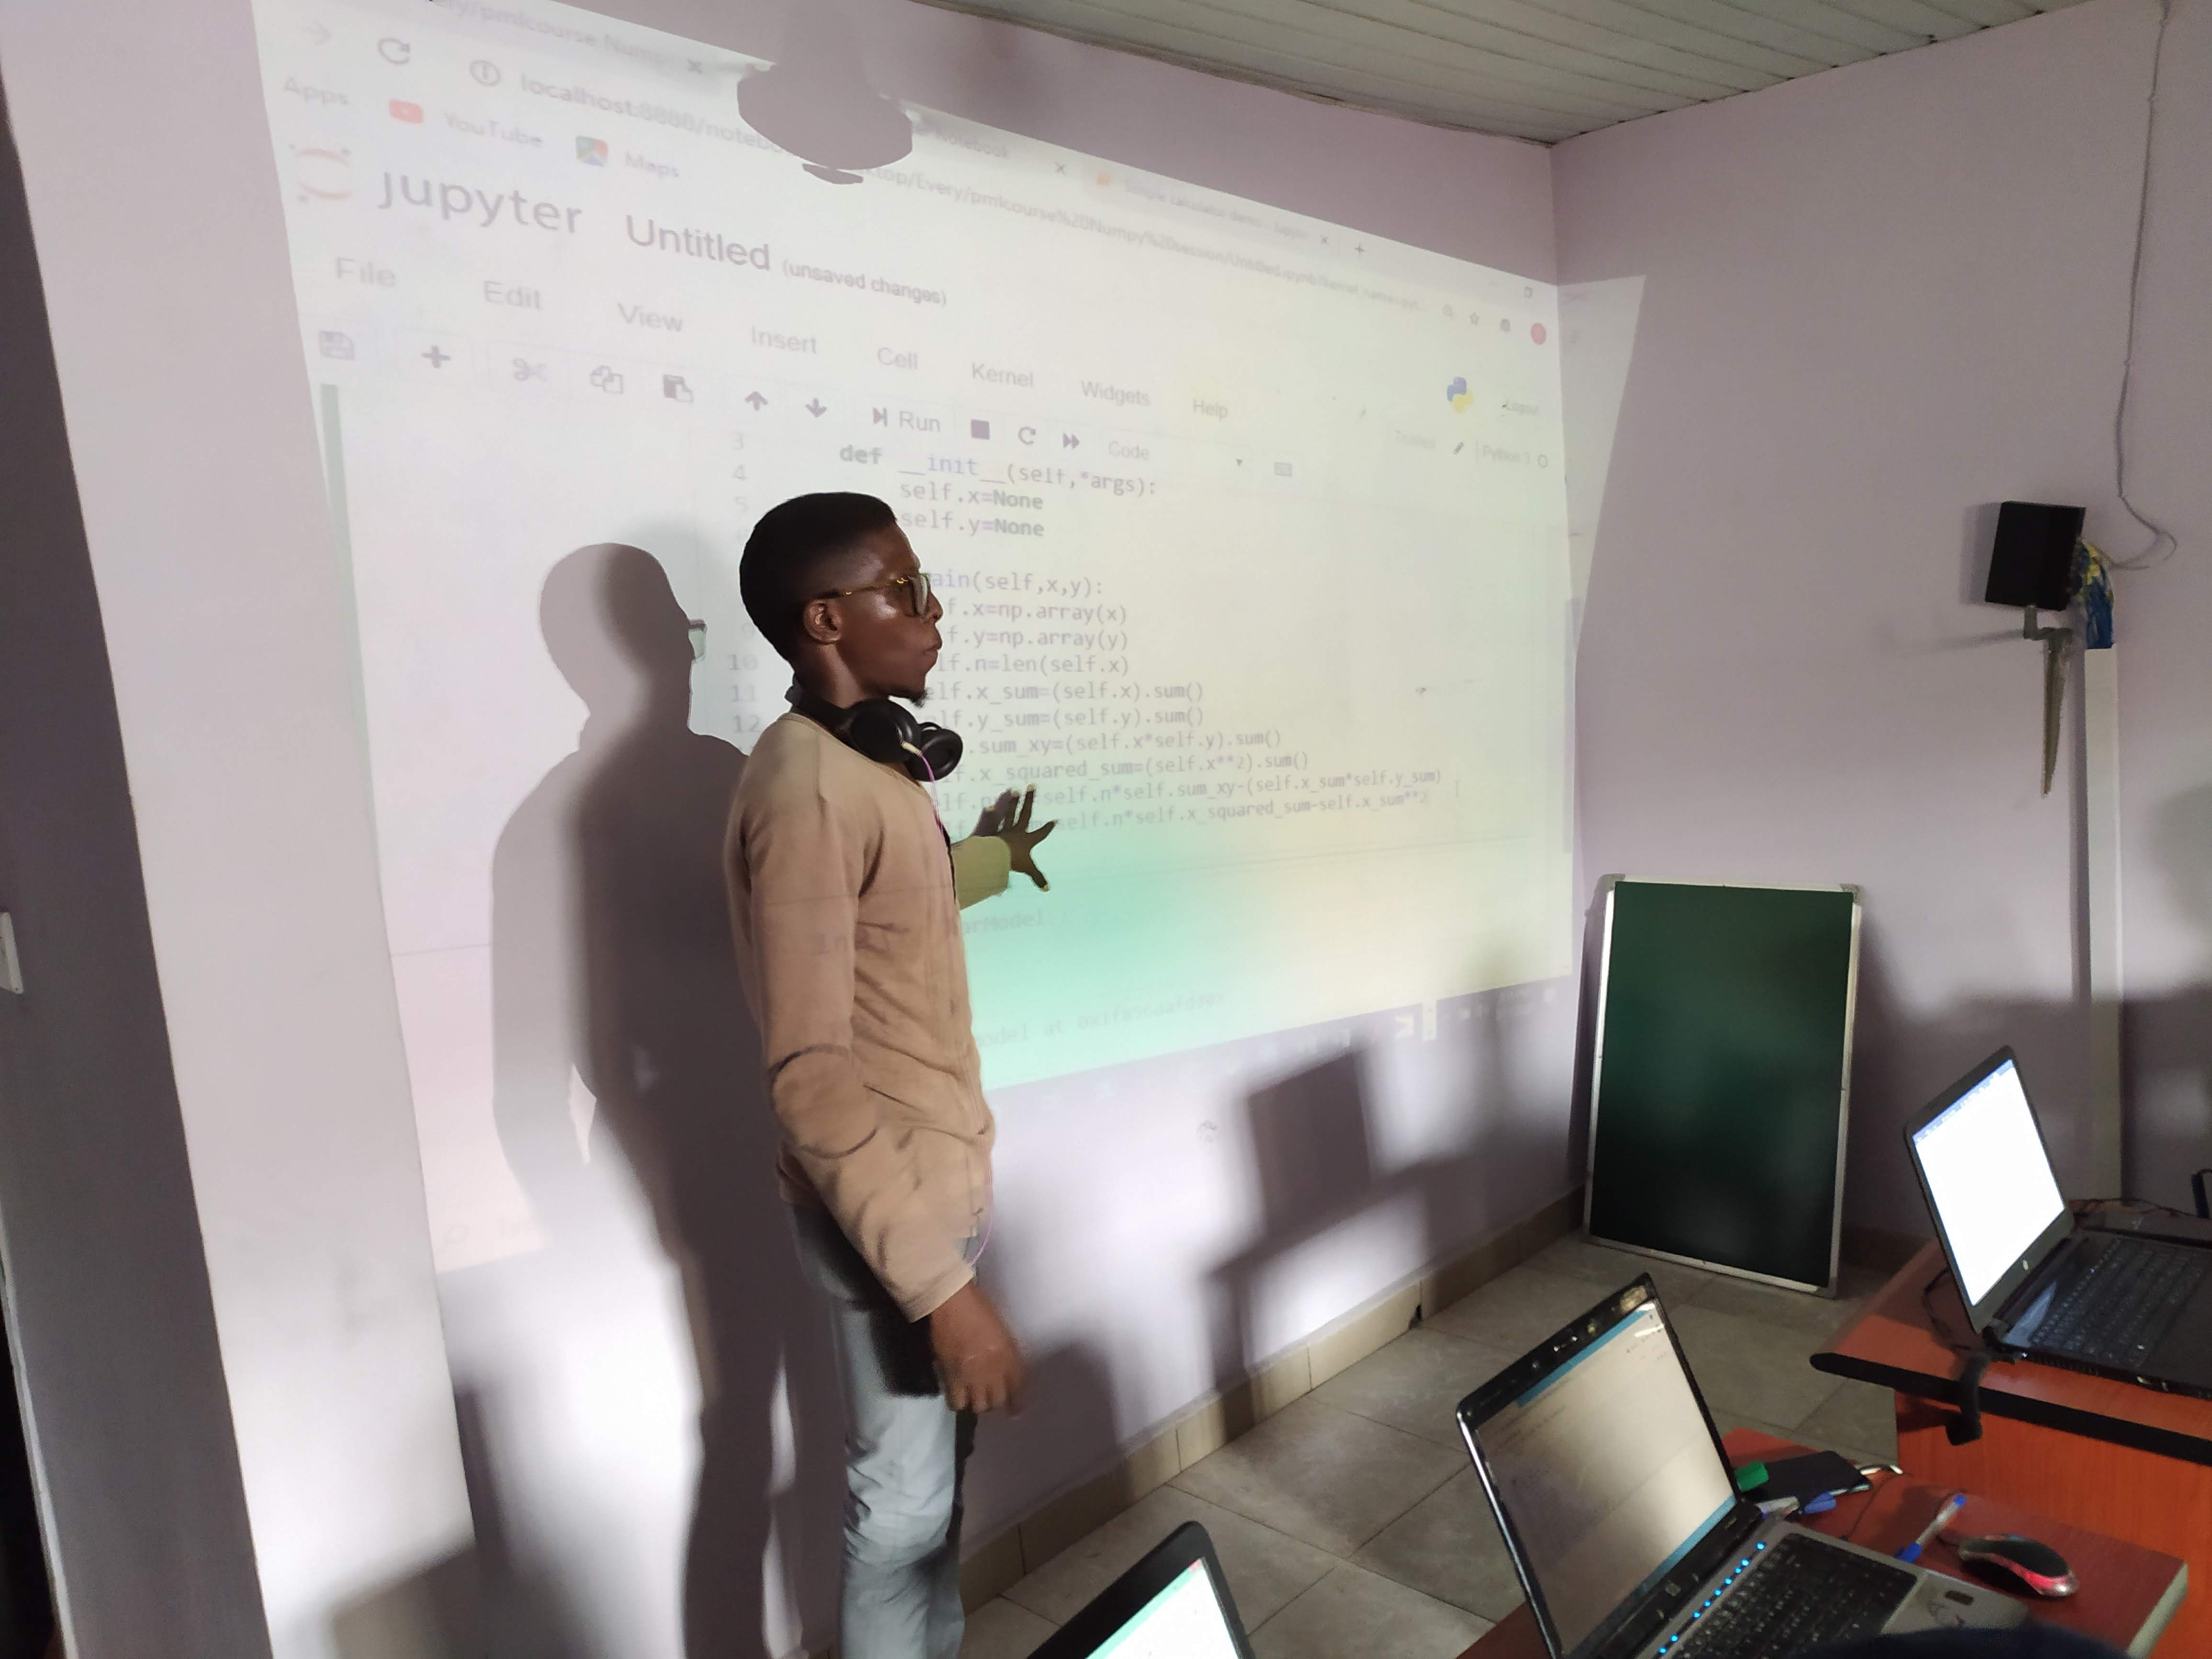 A man wearing a brown shirt is pointing to a projected screen containing Python code.jpg